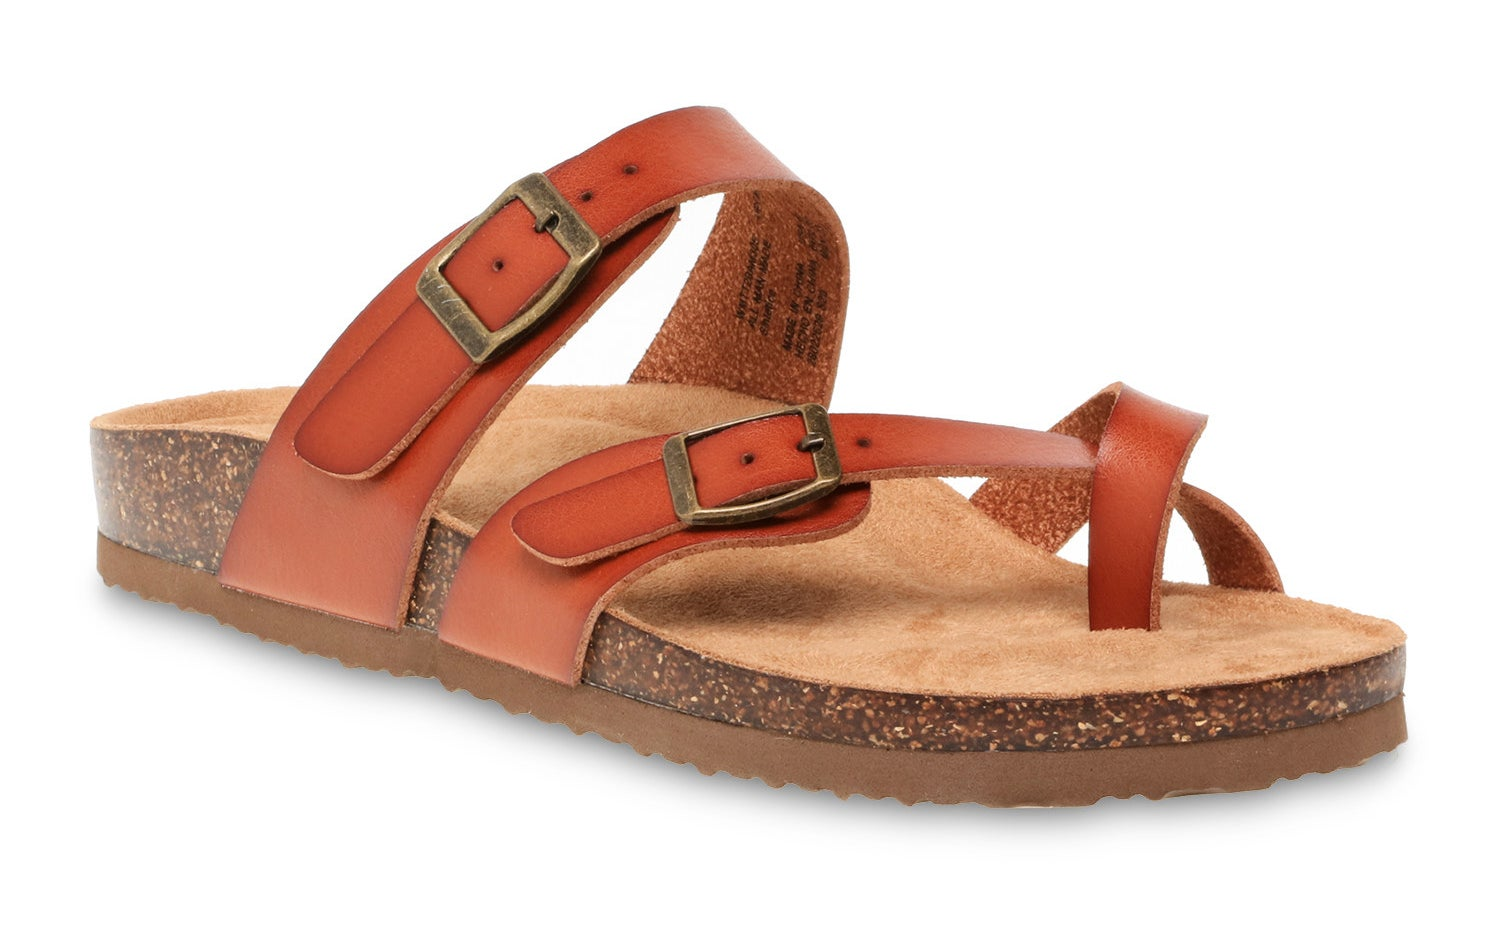 The sandal with burnt orange straps and a cork sole